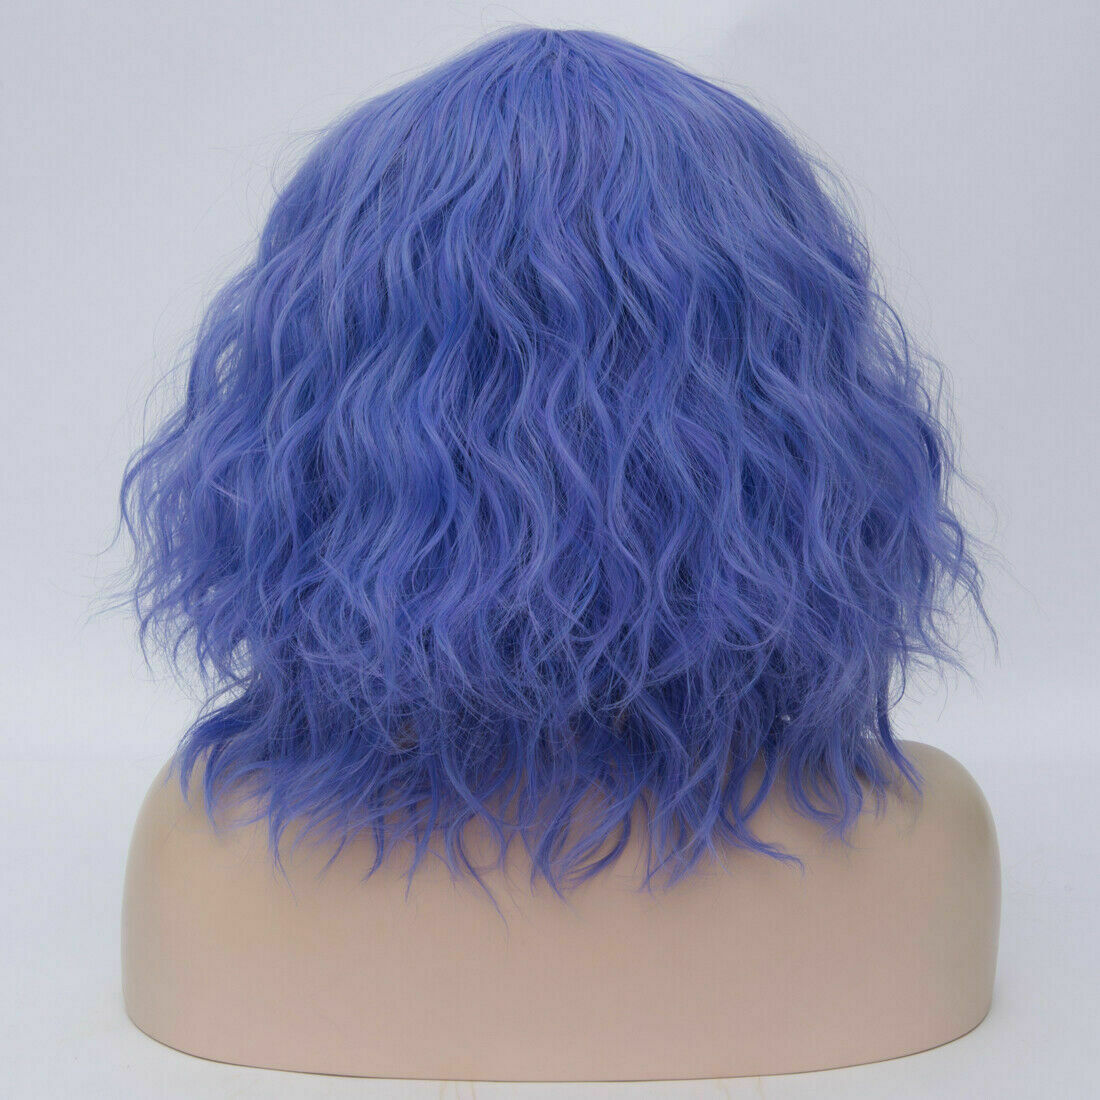 Lolita-Women-039-s-Short-Curly-Anime-Synthetic-Hair-Heat-Resistant-Cosplay-Party-Wig miniature 75